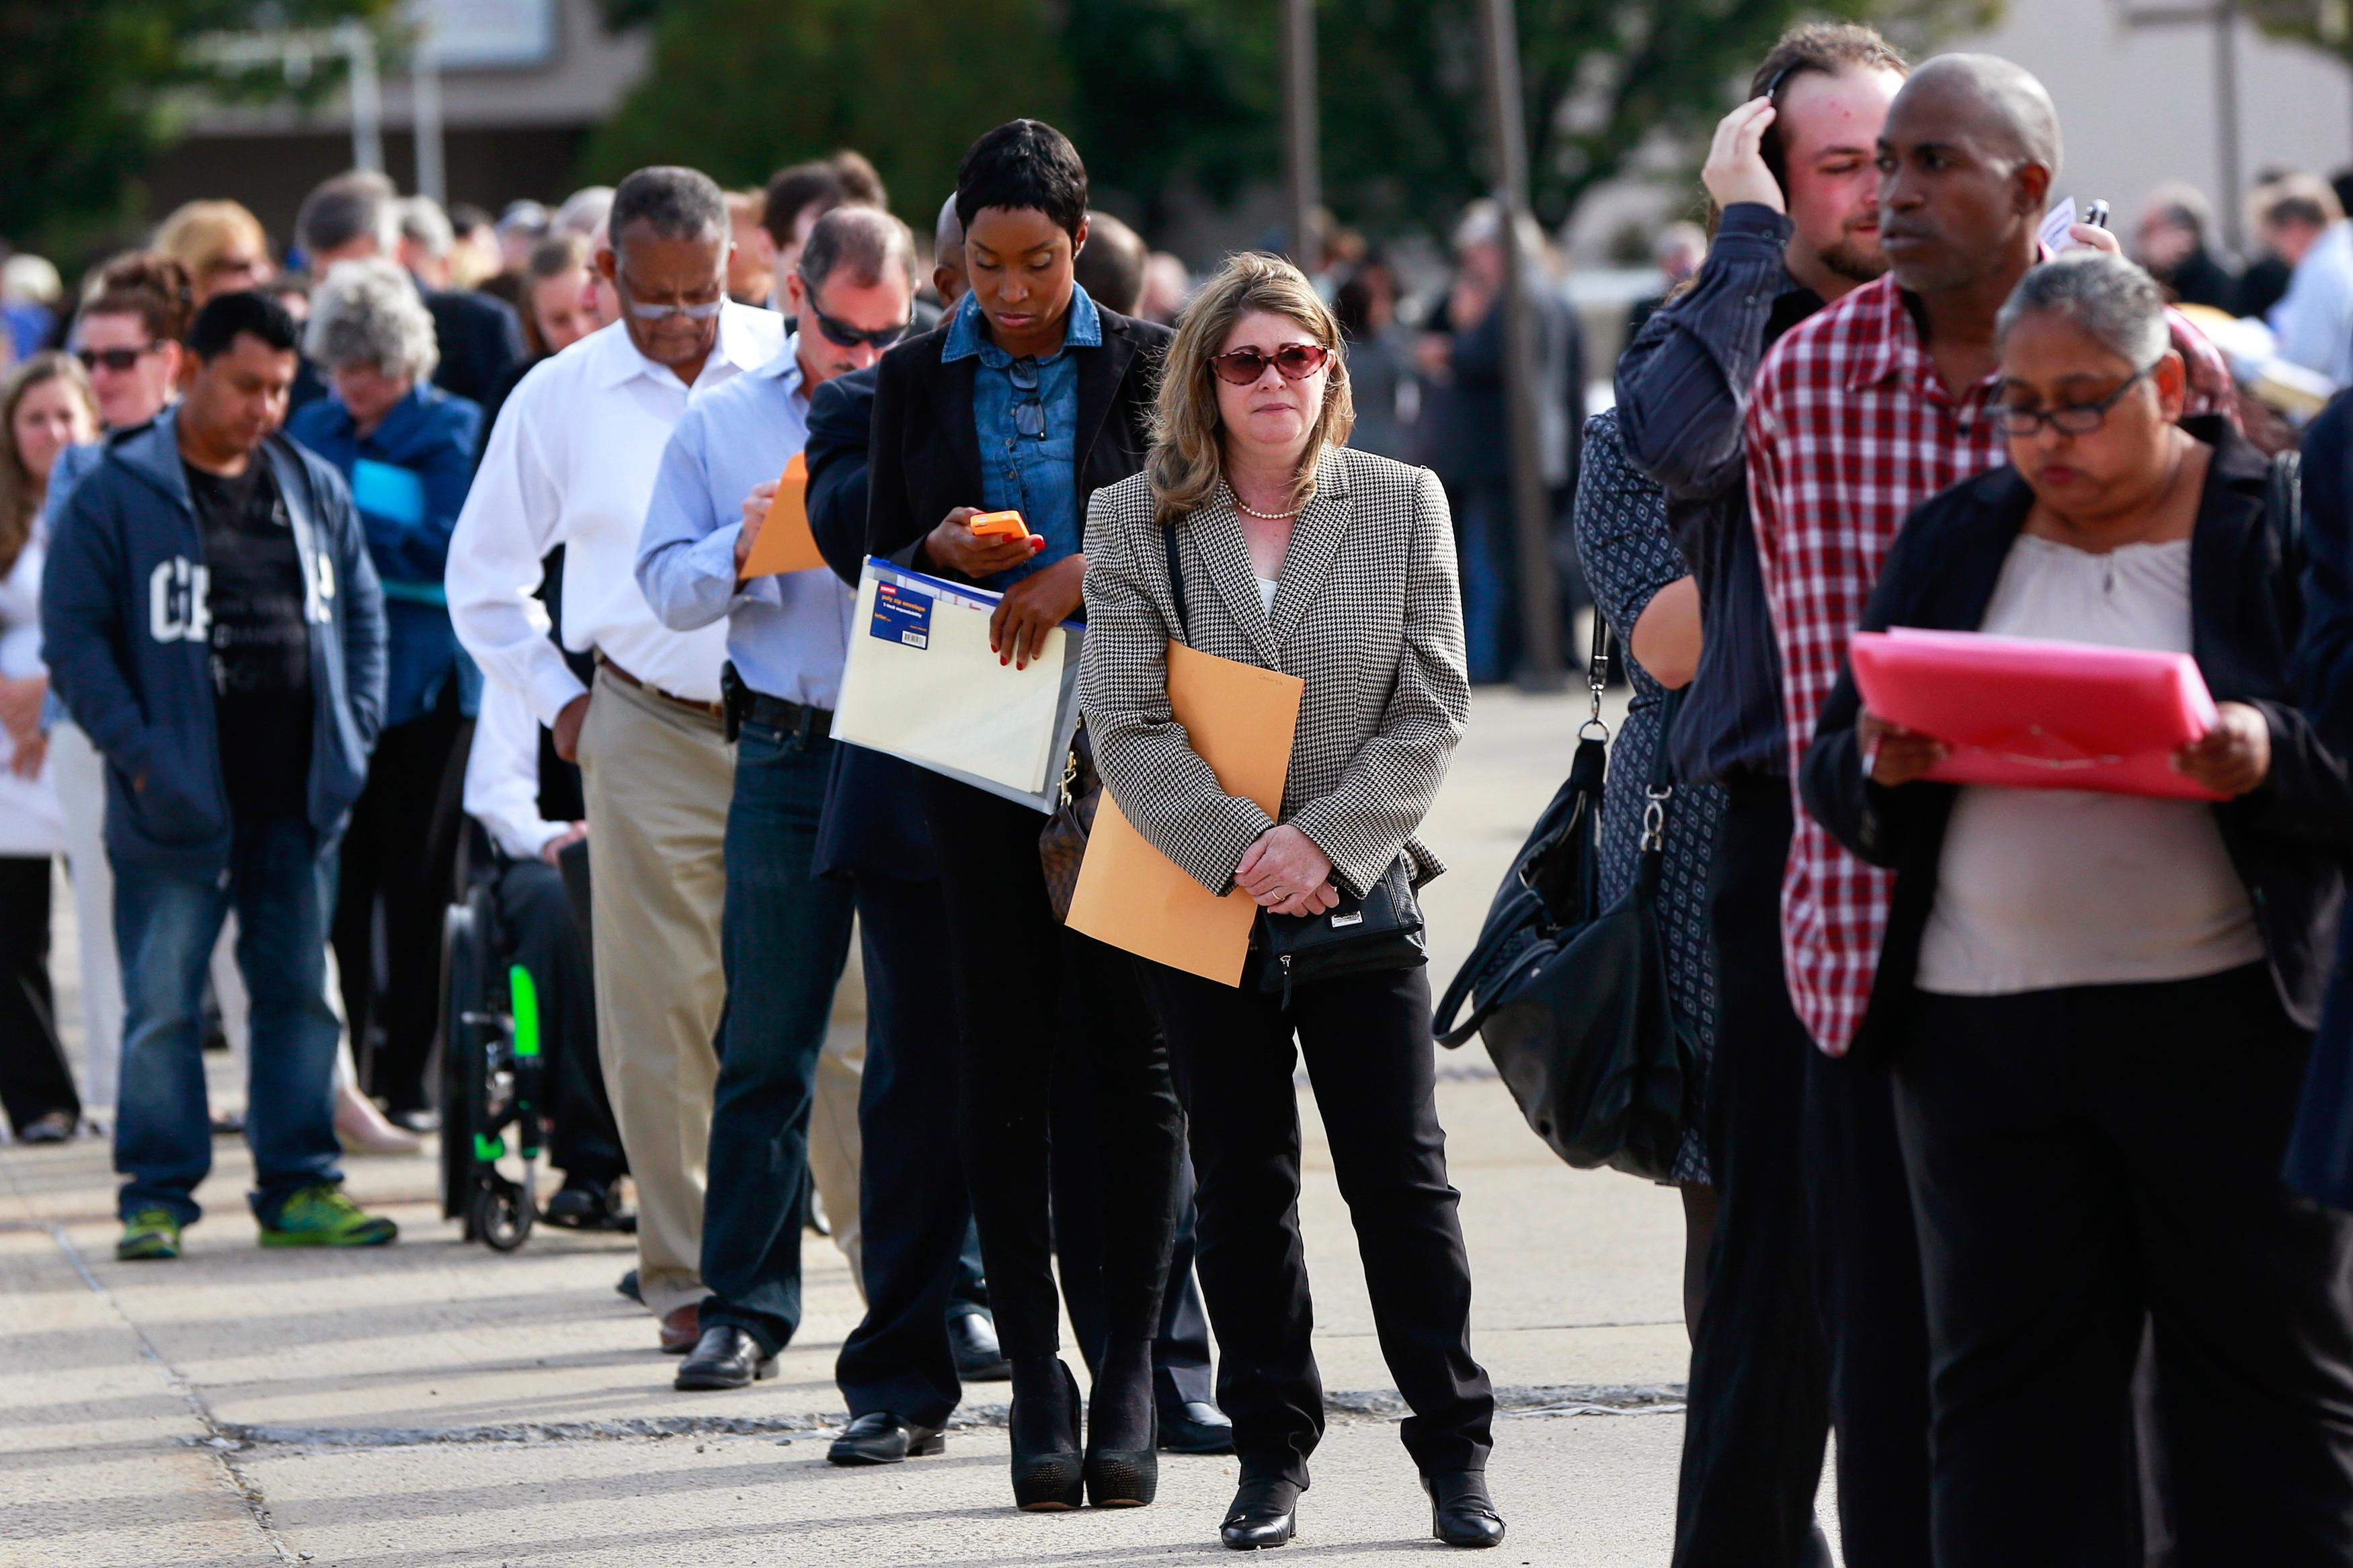 U.S. weekly jobless claims rise less than expected